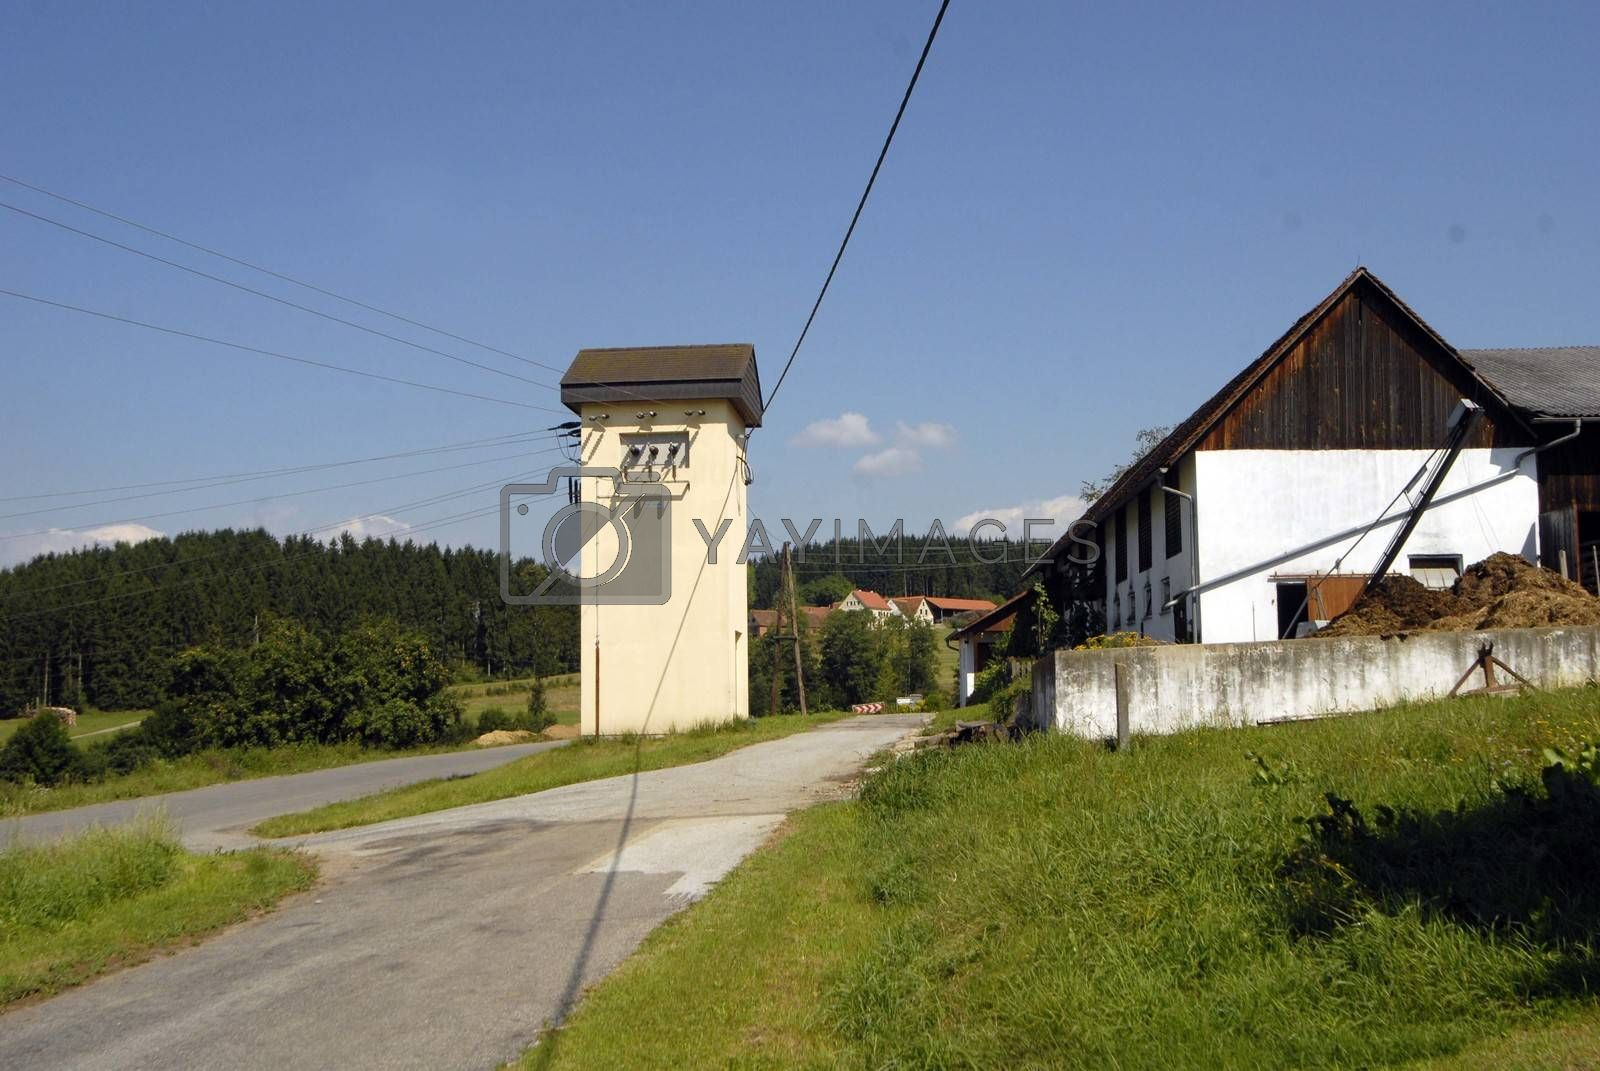 an electrical substation next to the street in the countryside